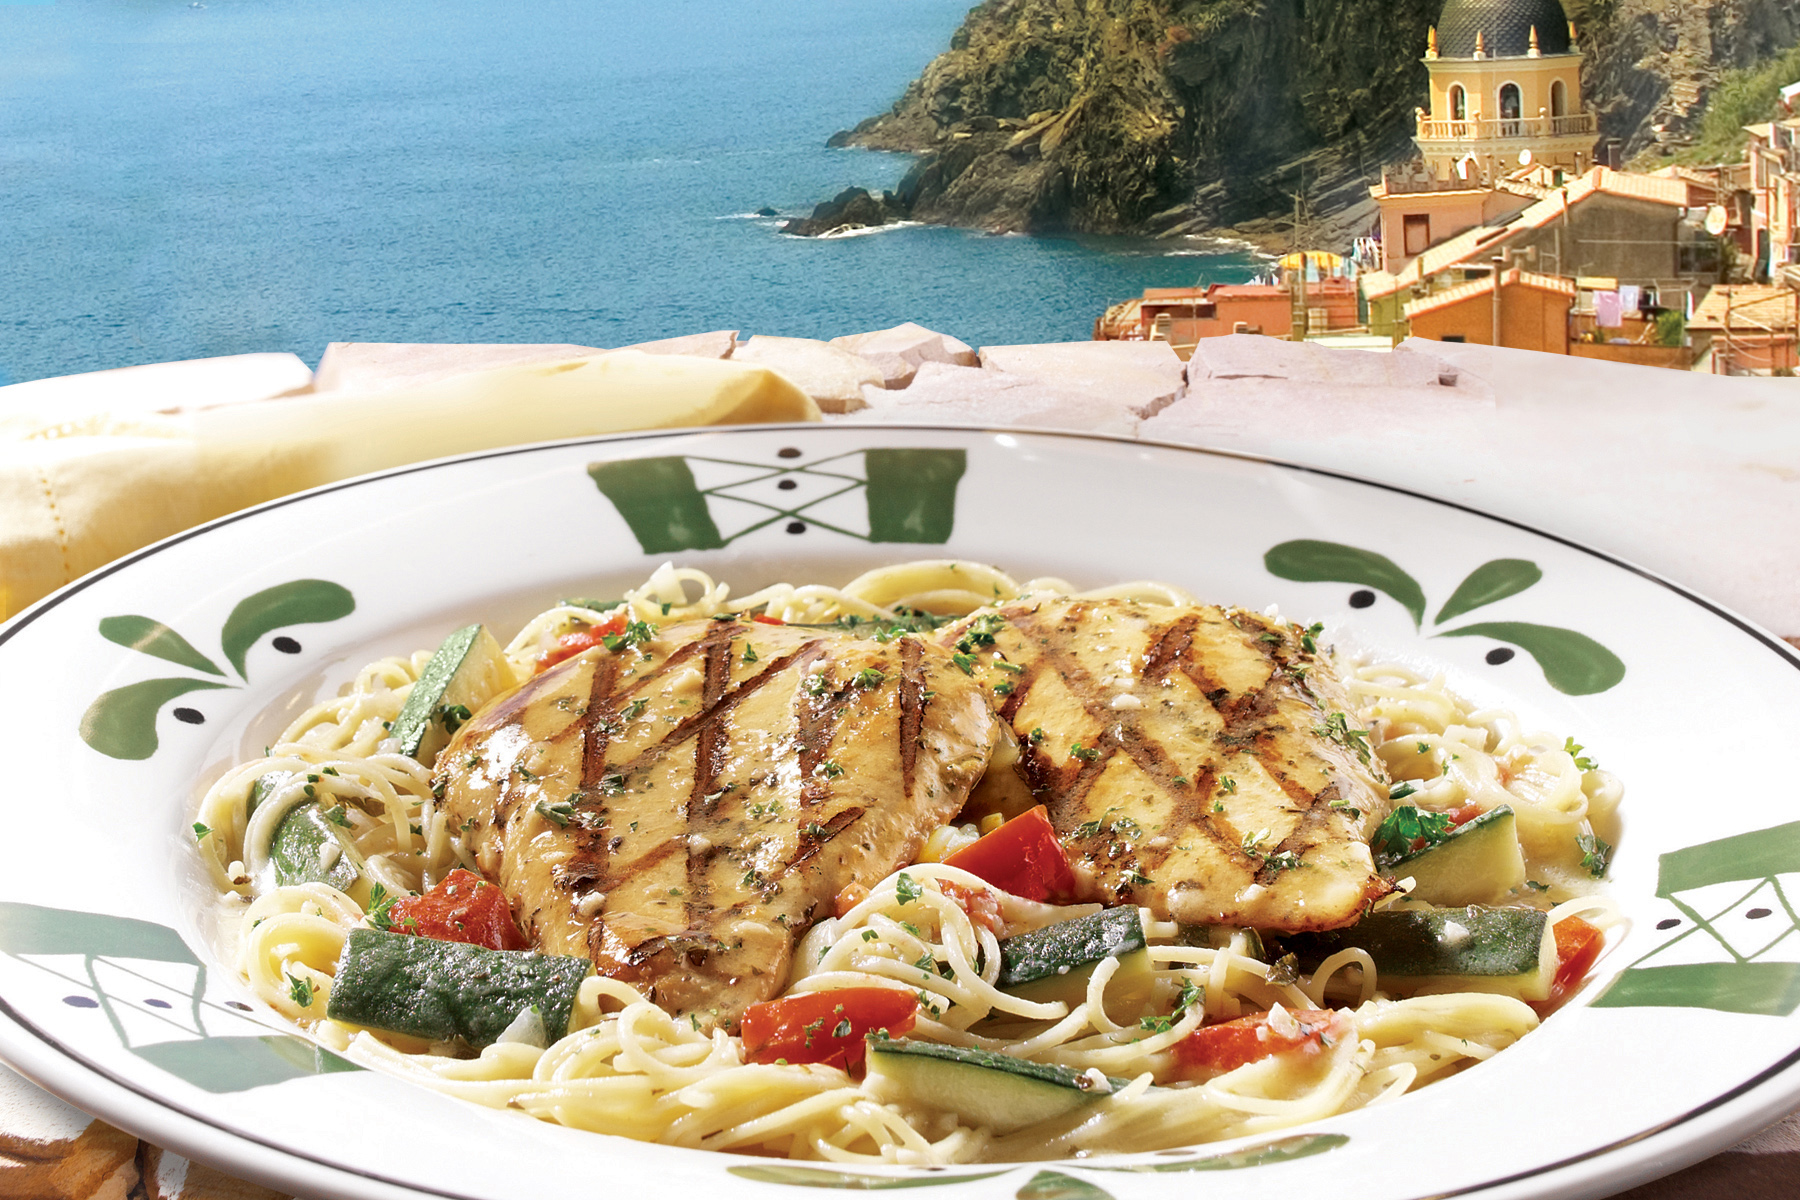 Menu For Olive Garden: Olive Garden Grills Up Summertime Dishes